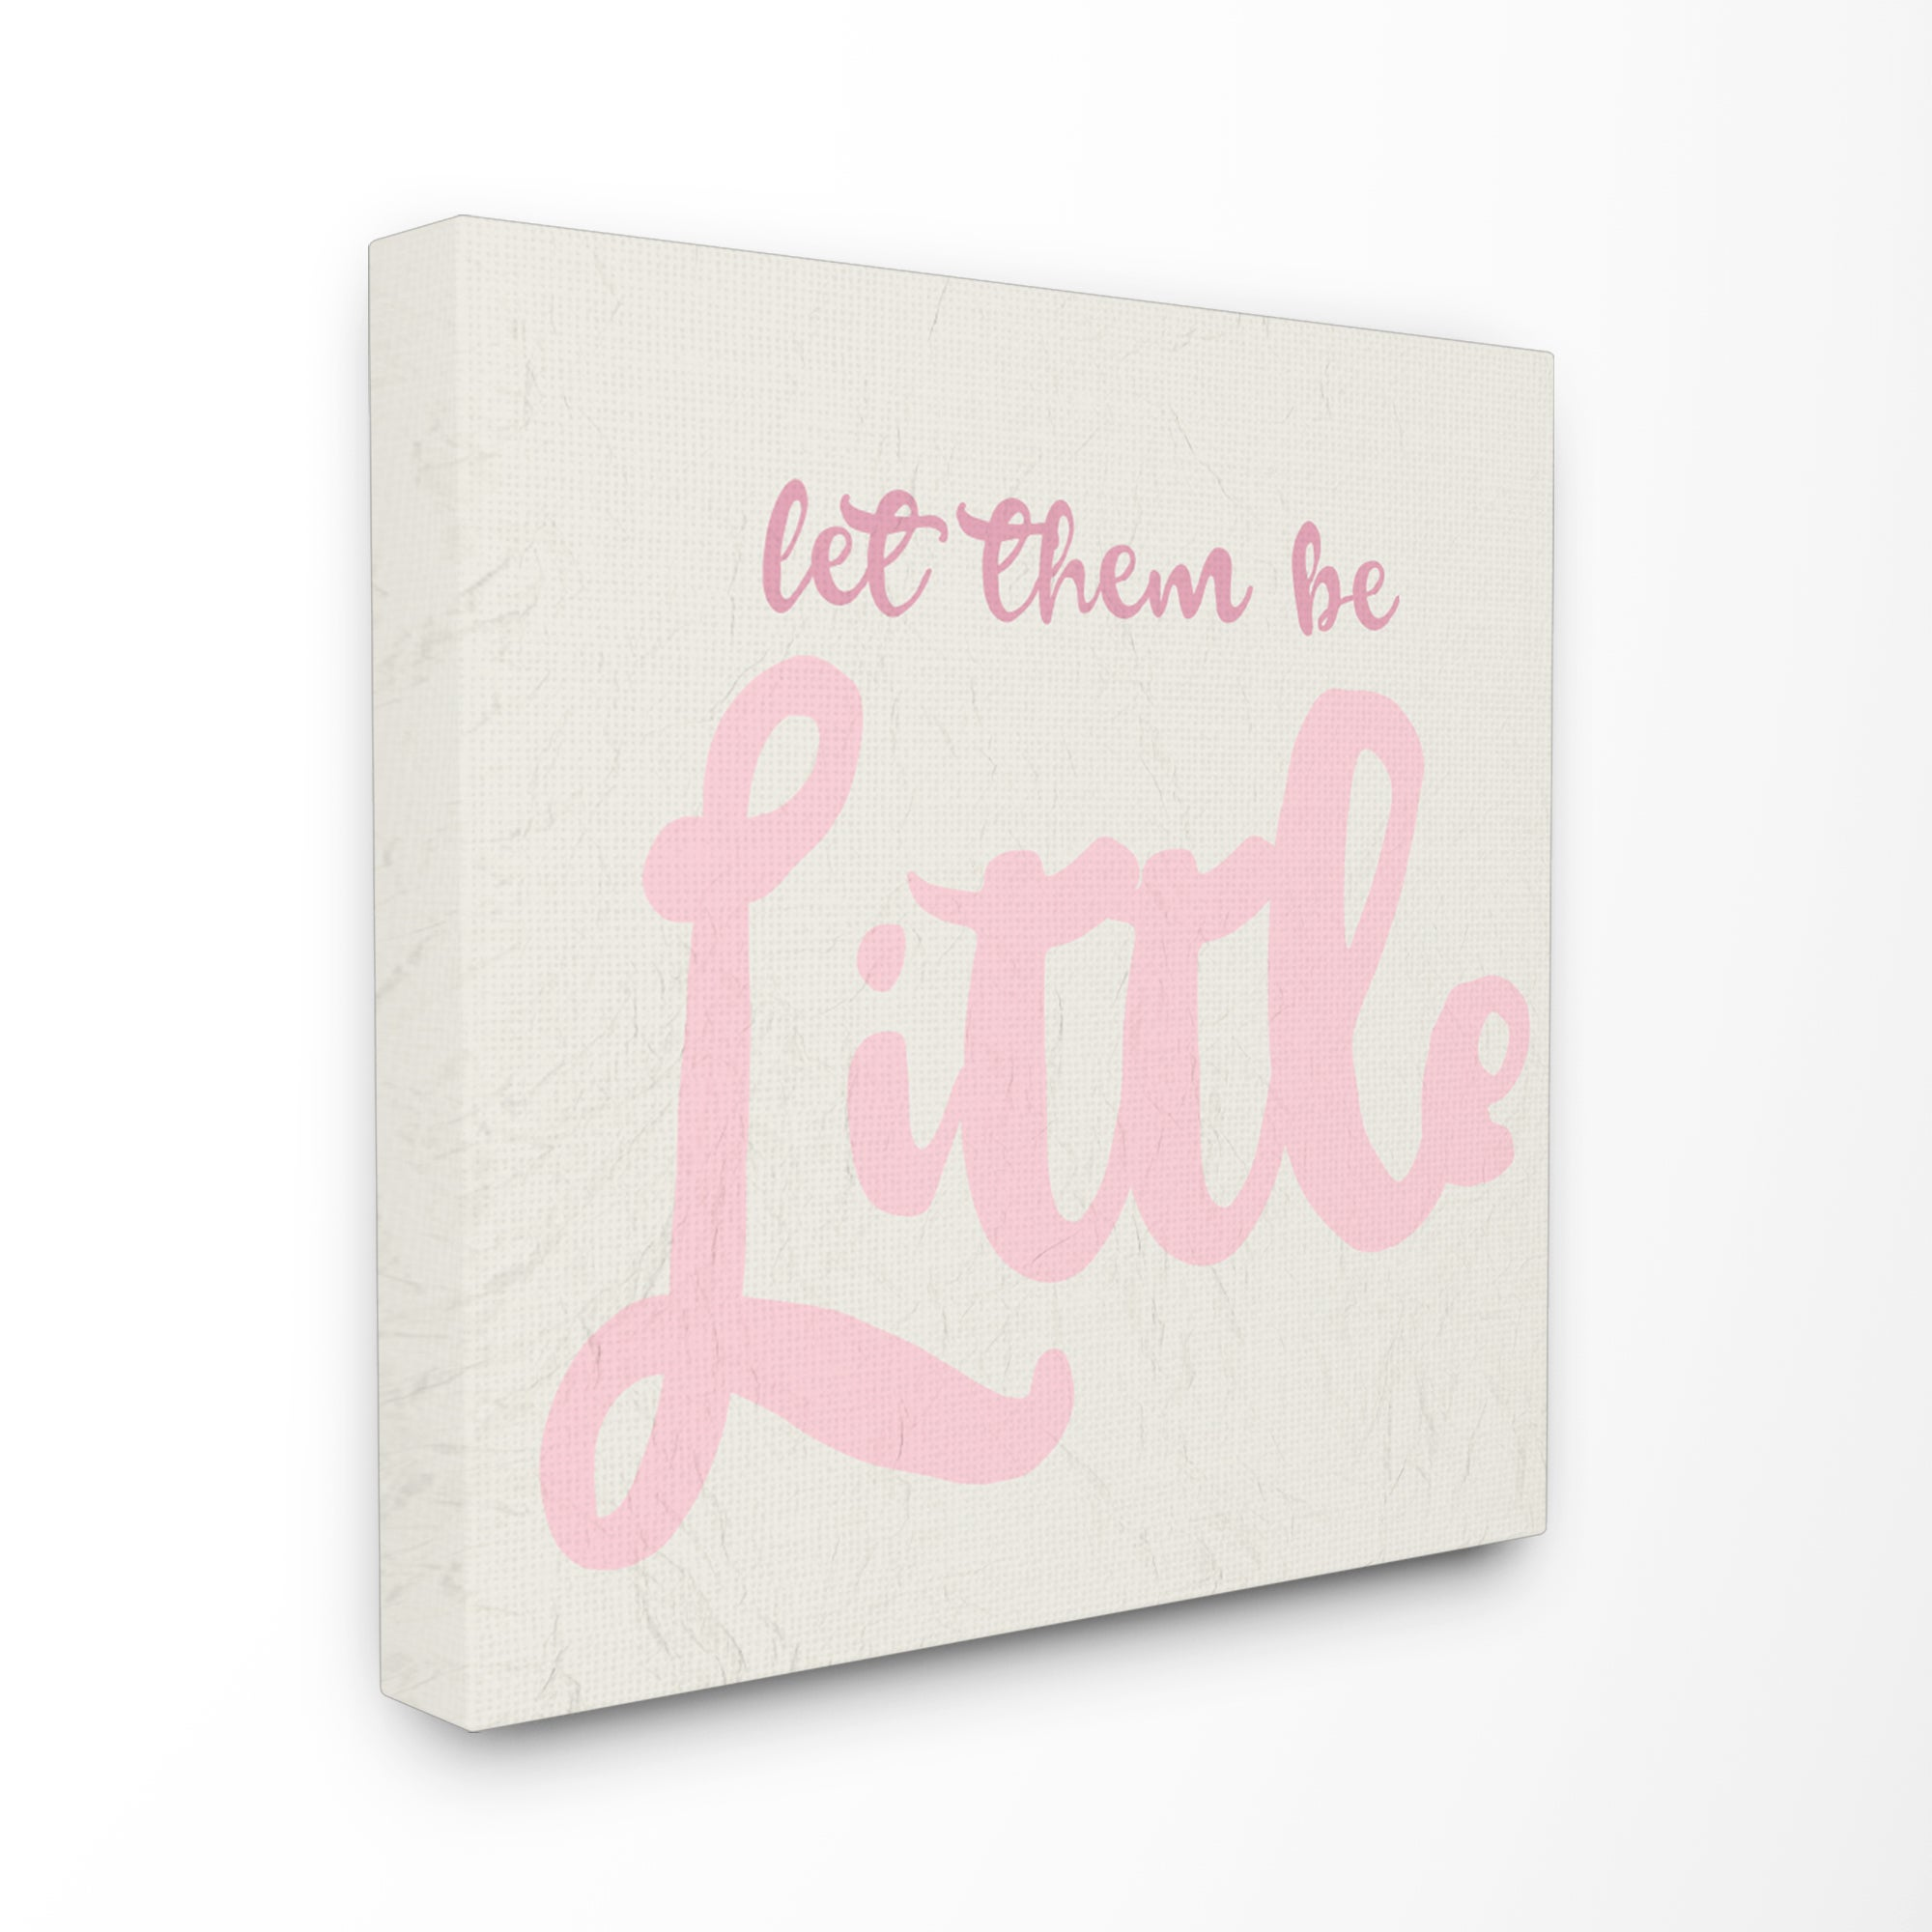 Details about Let Them Be Little Pink Cursive Typography Stretched Canvas